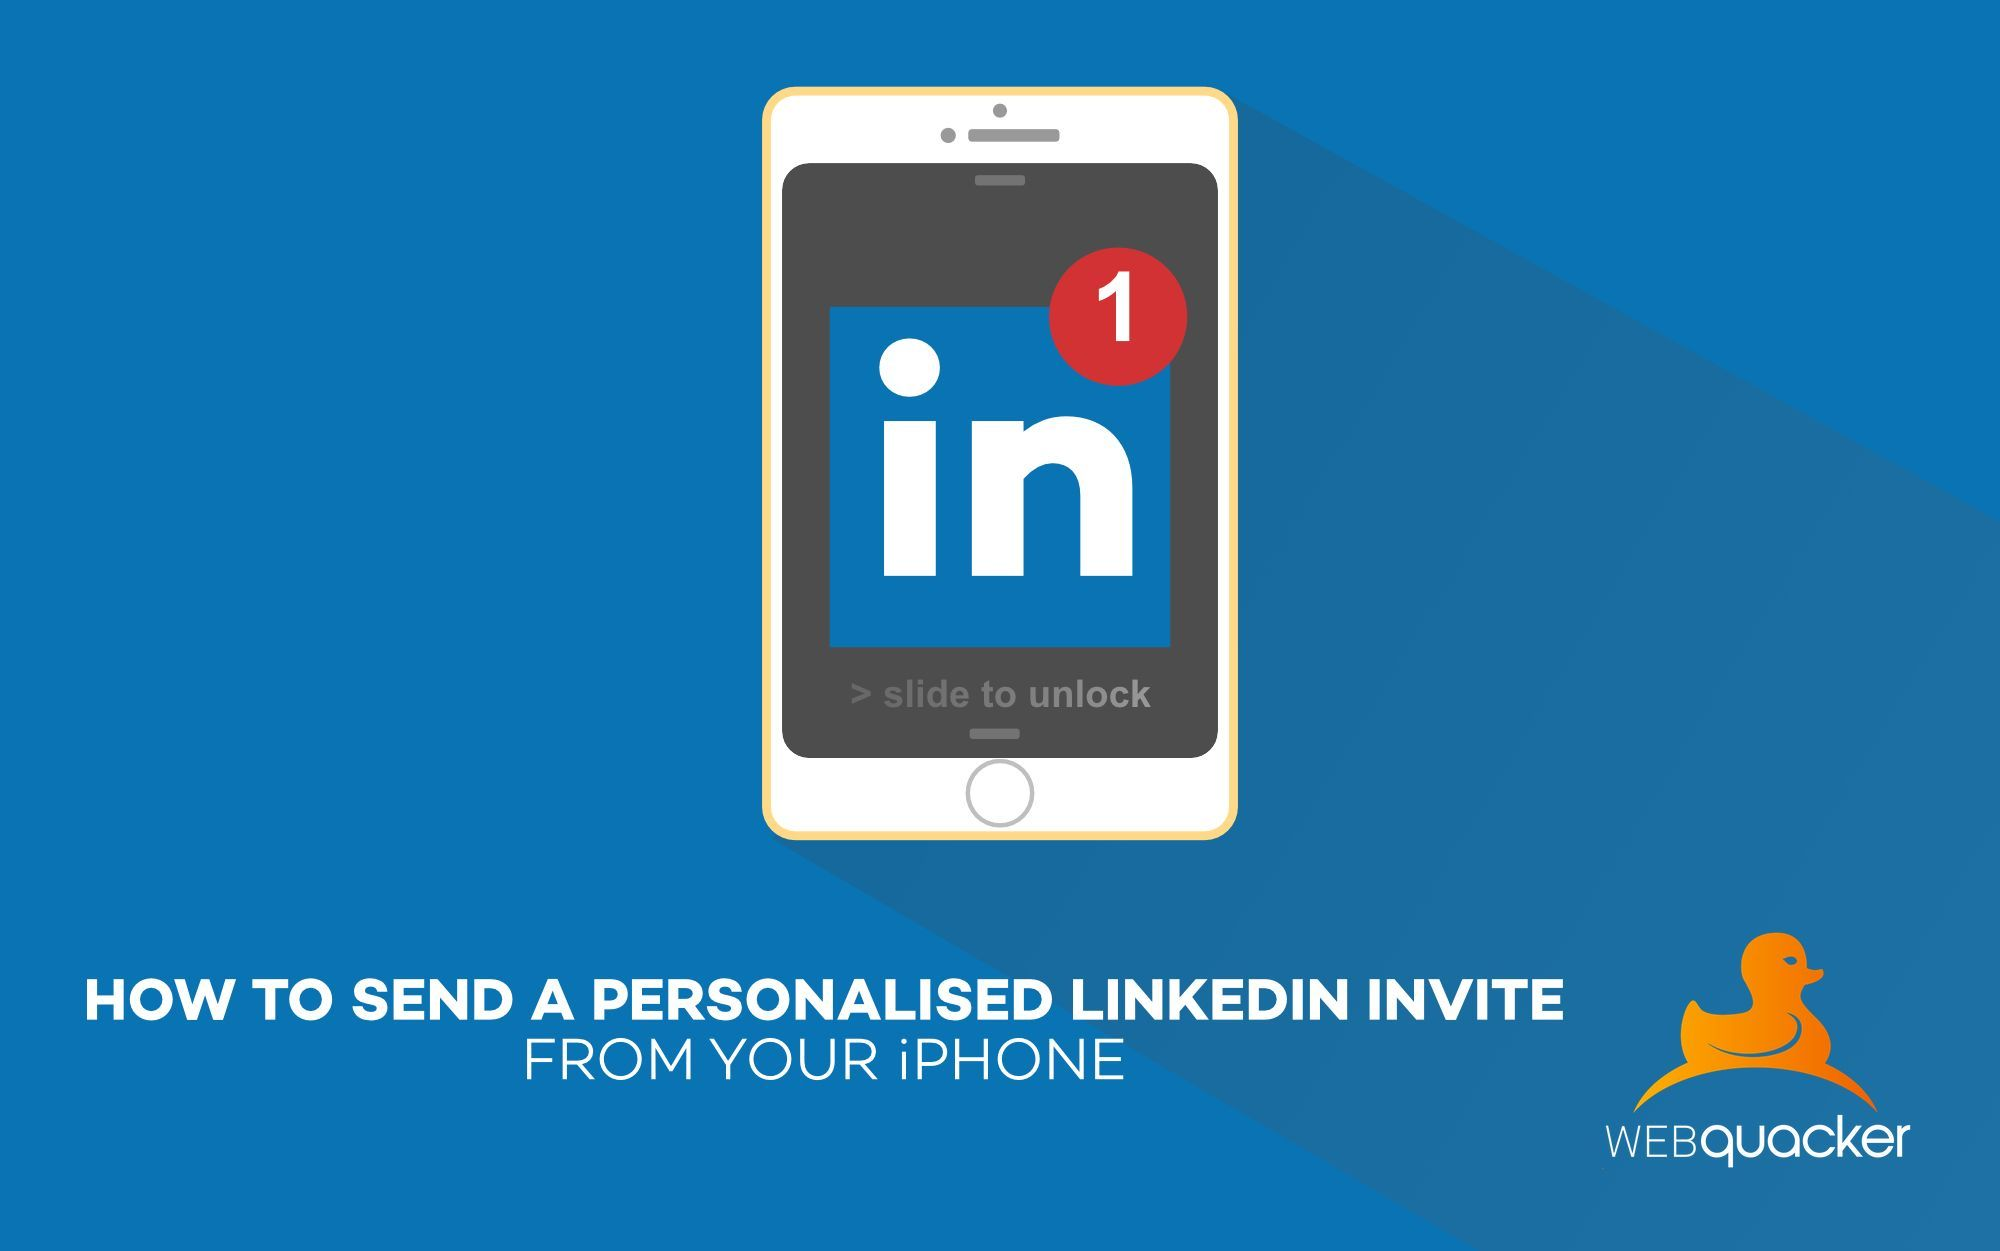 How to Send a Personalised LinkedIn Invite from your